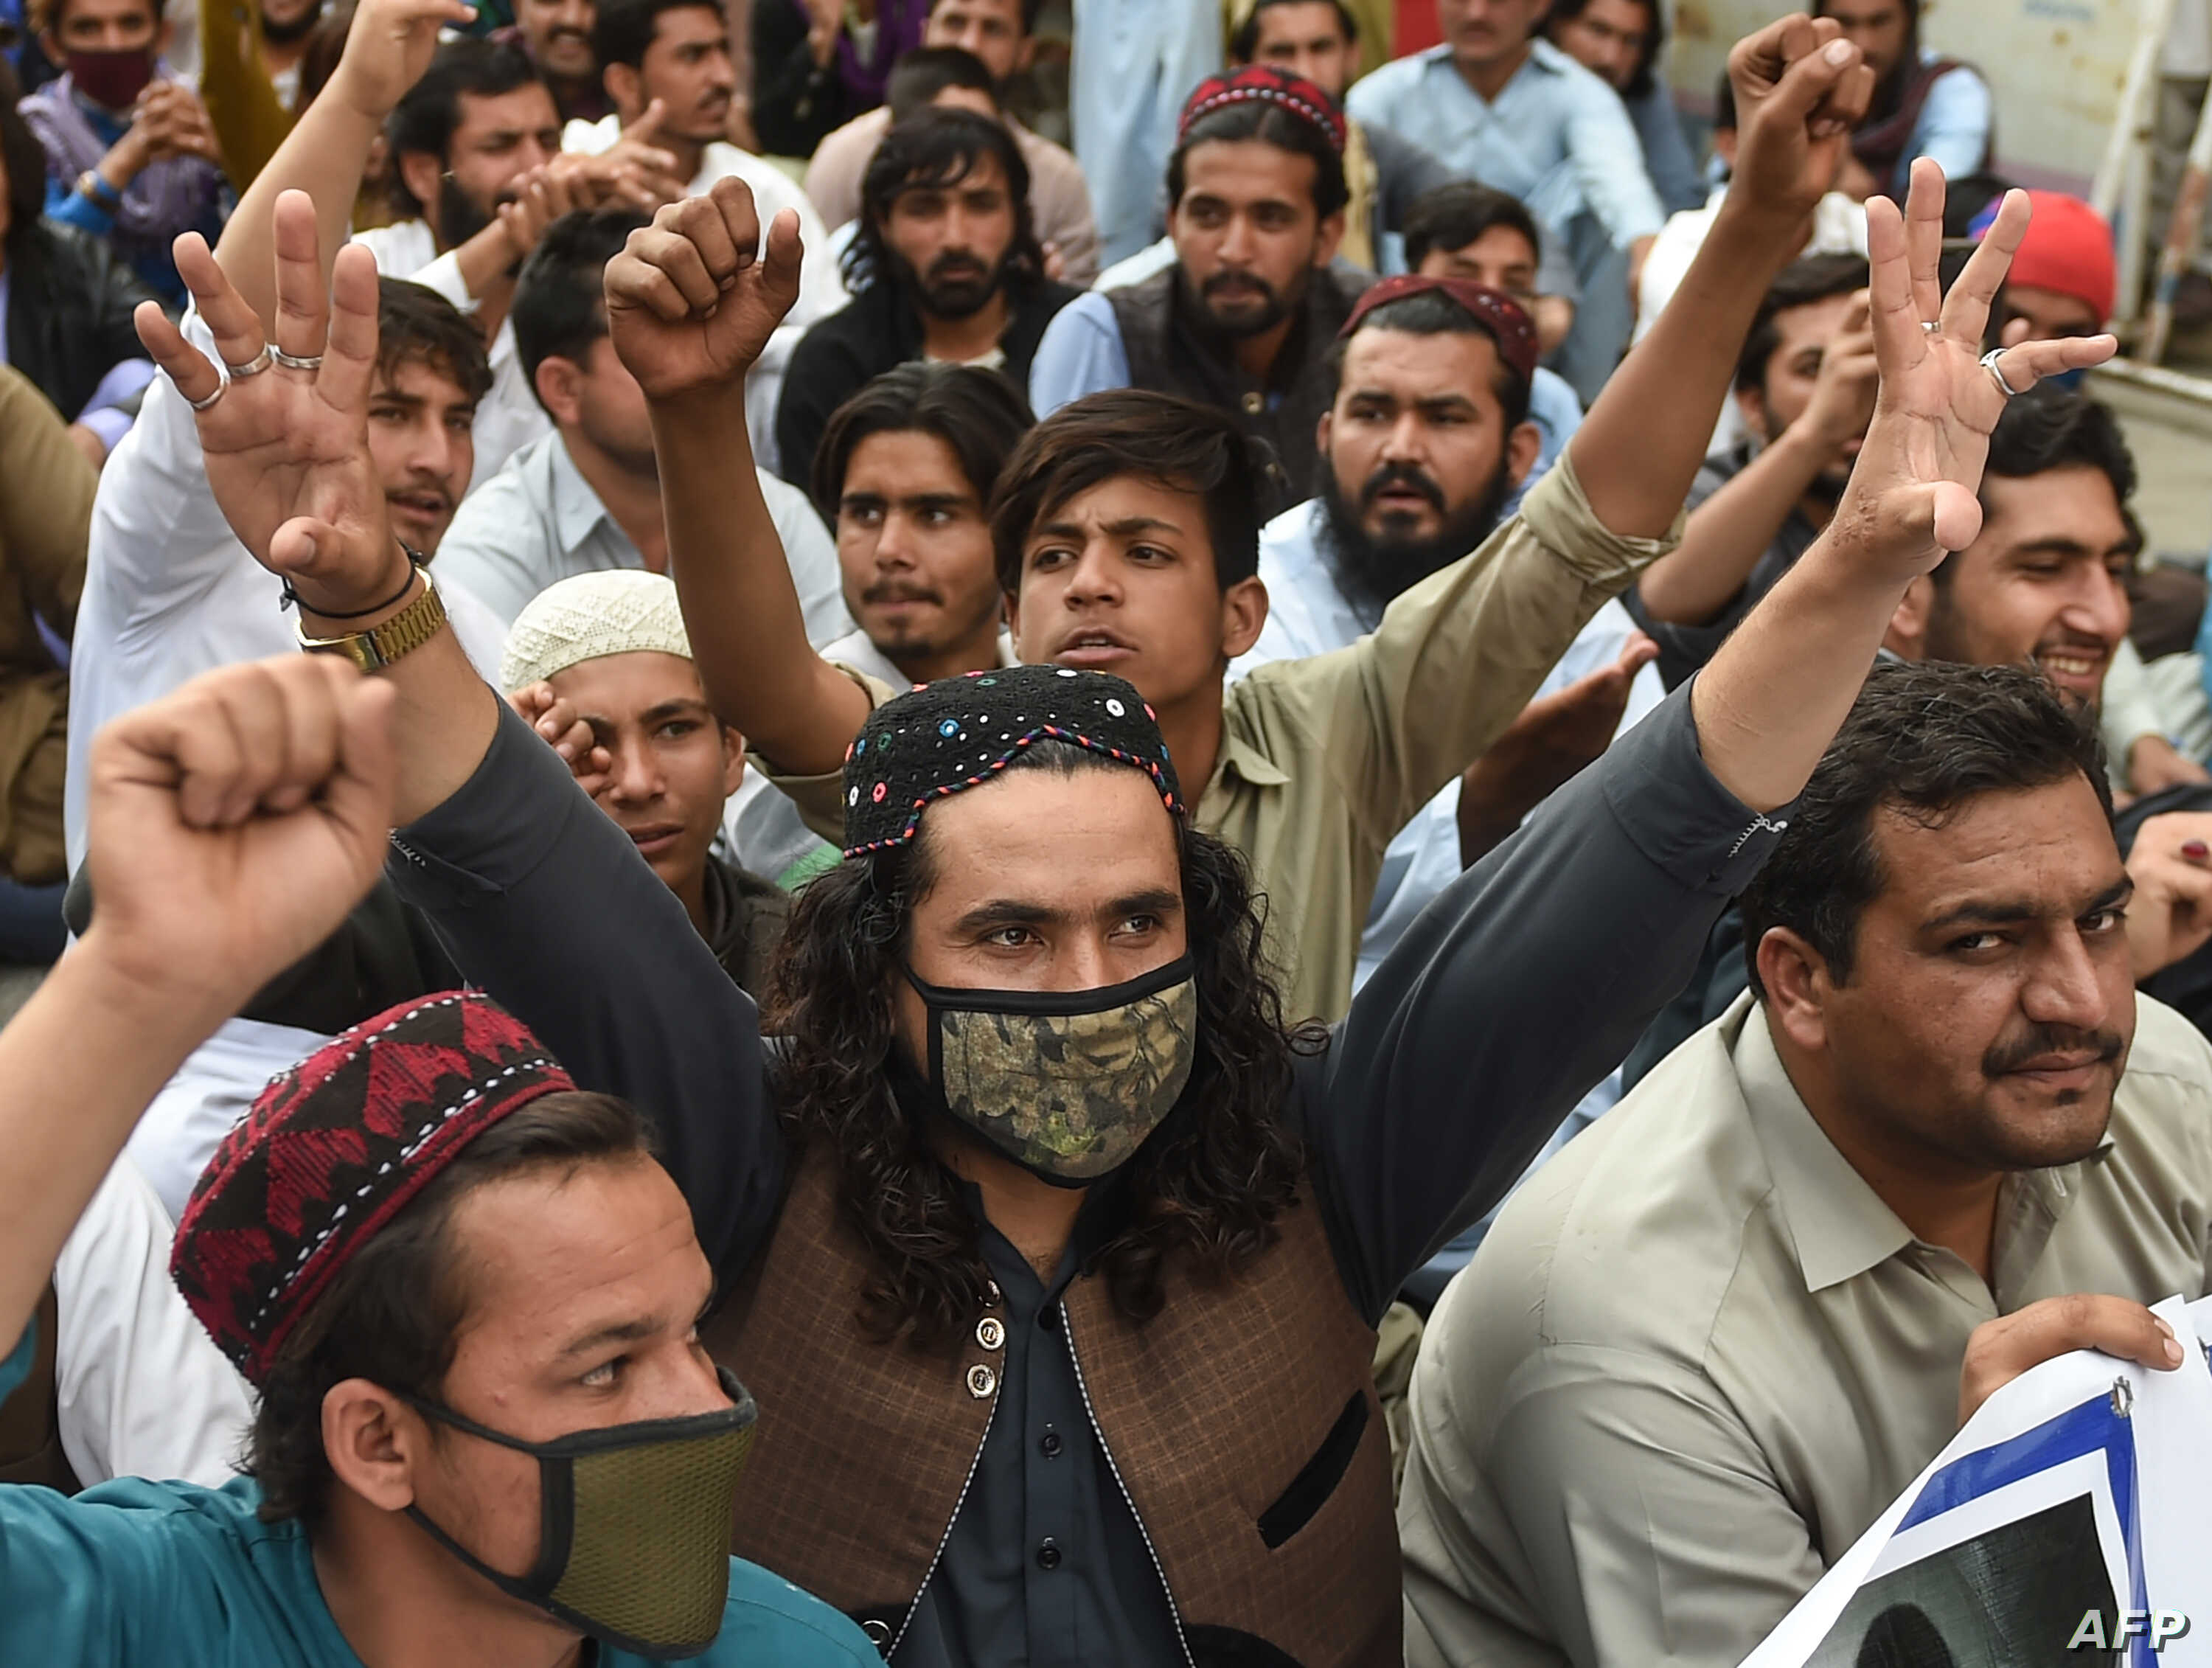 Activists of Pashtun Protection Movement (PTM) protest against the arrest of their activists and leaders, in Karachi on Feb. 10, 2019.